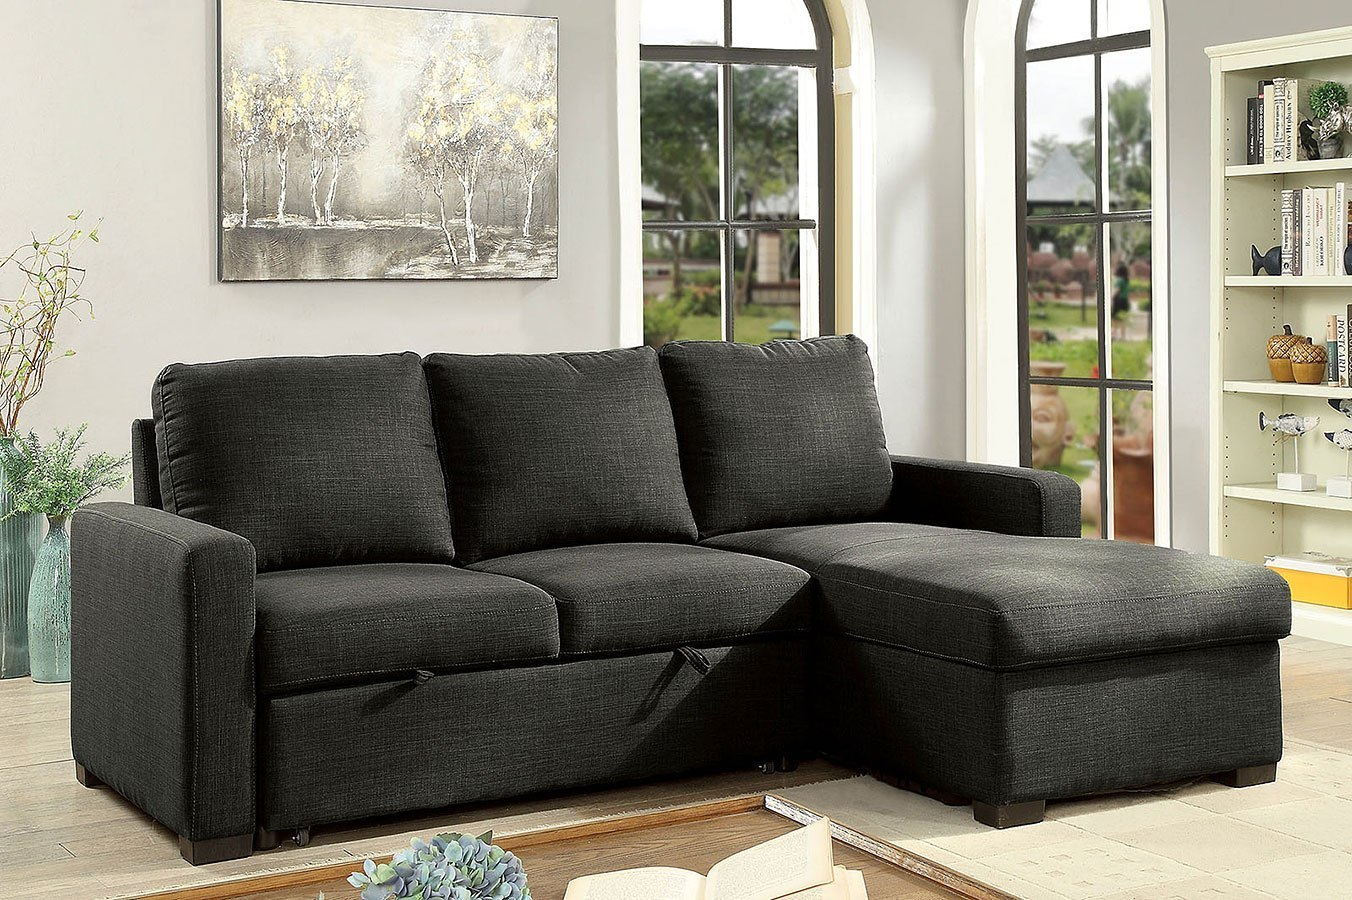 Arabella Sectional W/ Pull Out Sleeper (Dark Gray) By